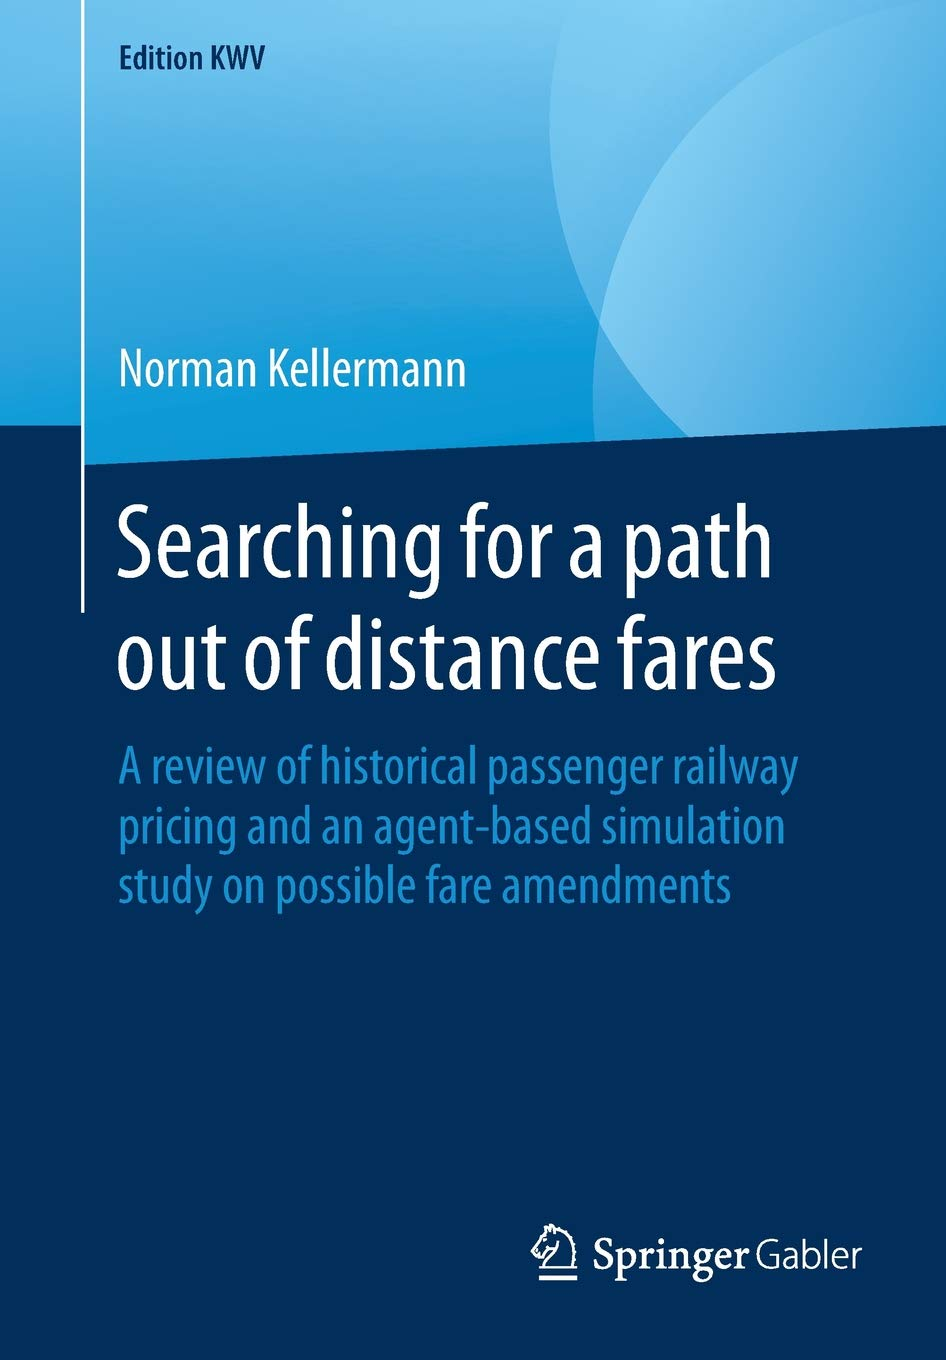 Searching for a path out of distance fares: A review of